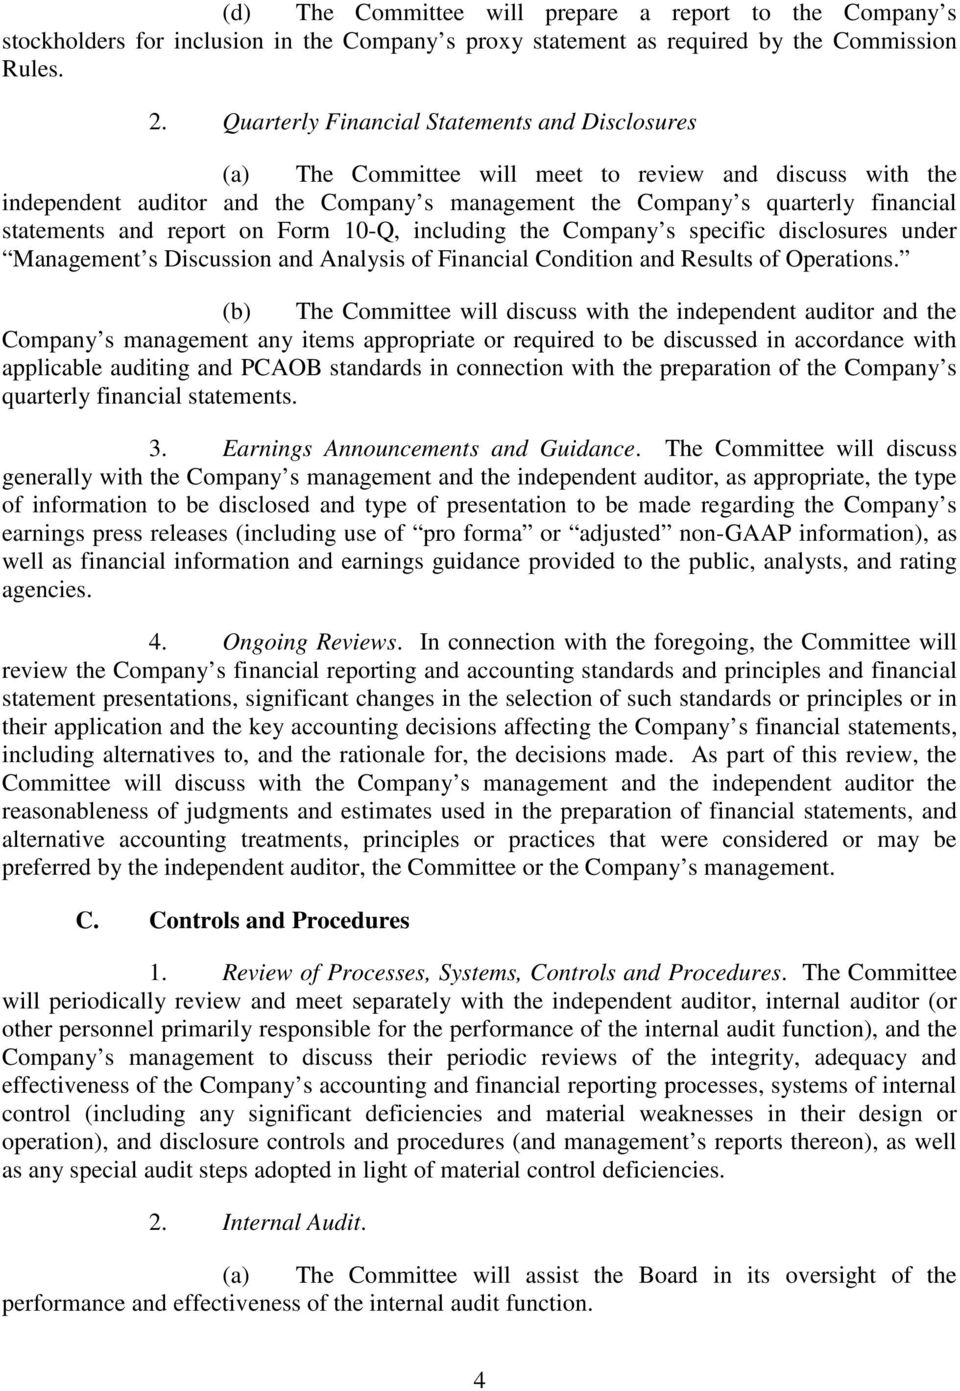 and report on Form 10-Q, including the Company s specific disclosures under Management s Discussion and Analysis of Financial Condition and Results of Operations.